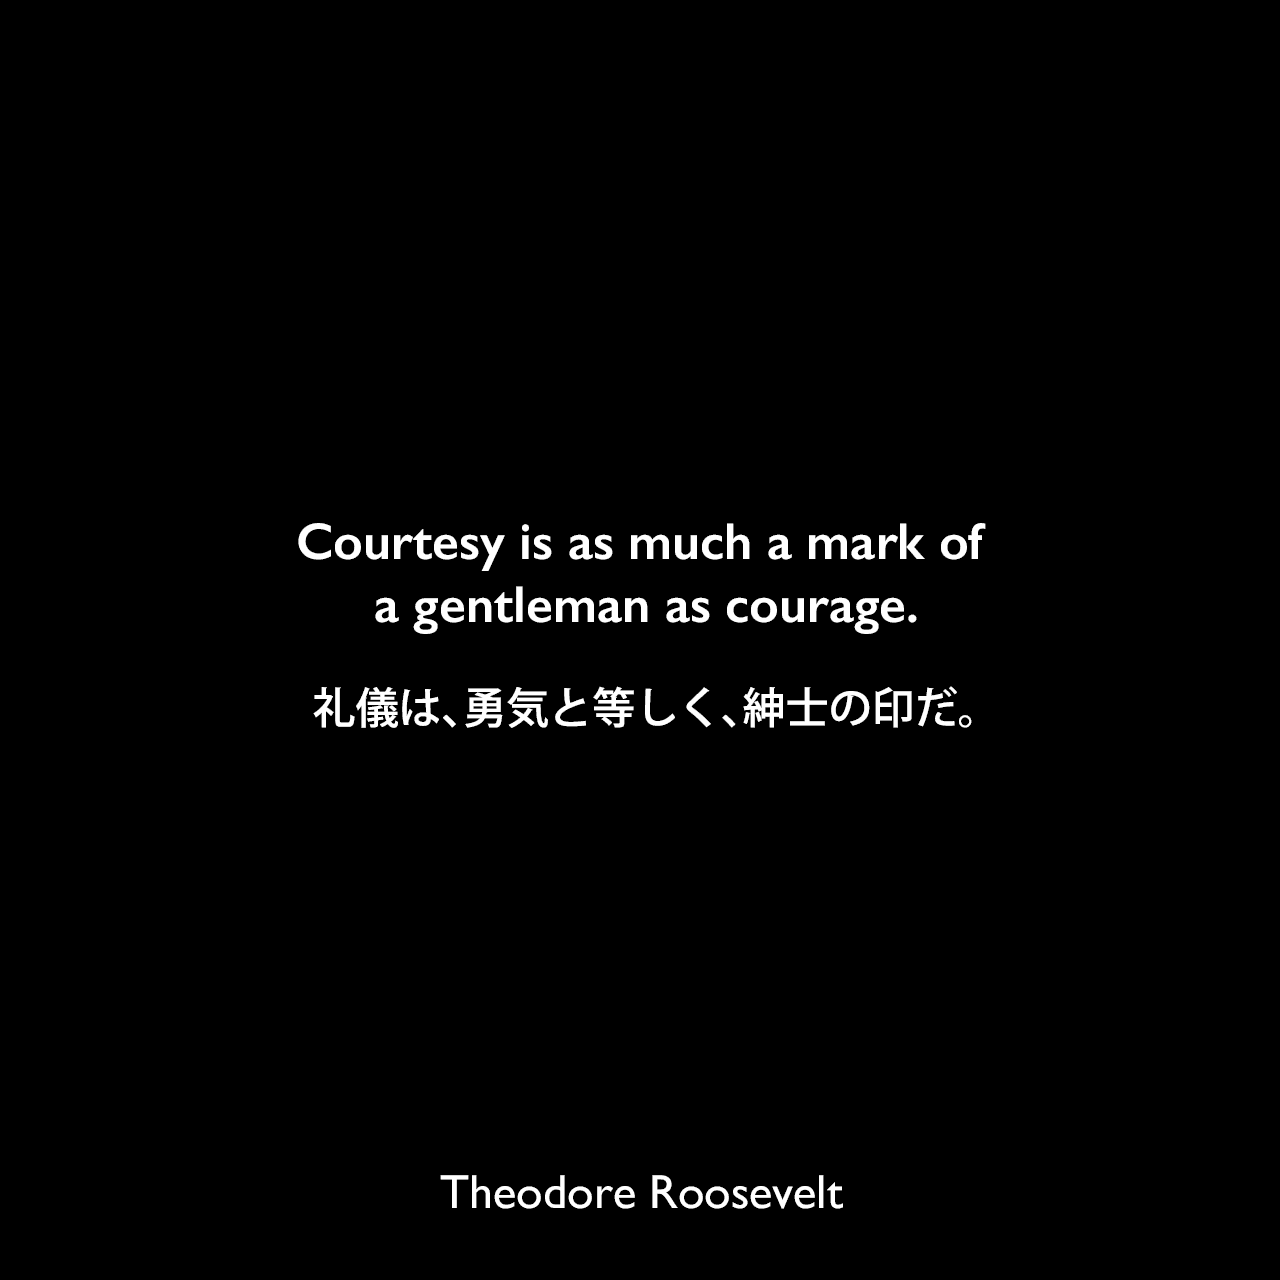 Courtesy is as much a mark of a gentleman as courage.礼儀は、勇気と等しく、紳士の印だ。Theodore Roosevelt